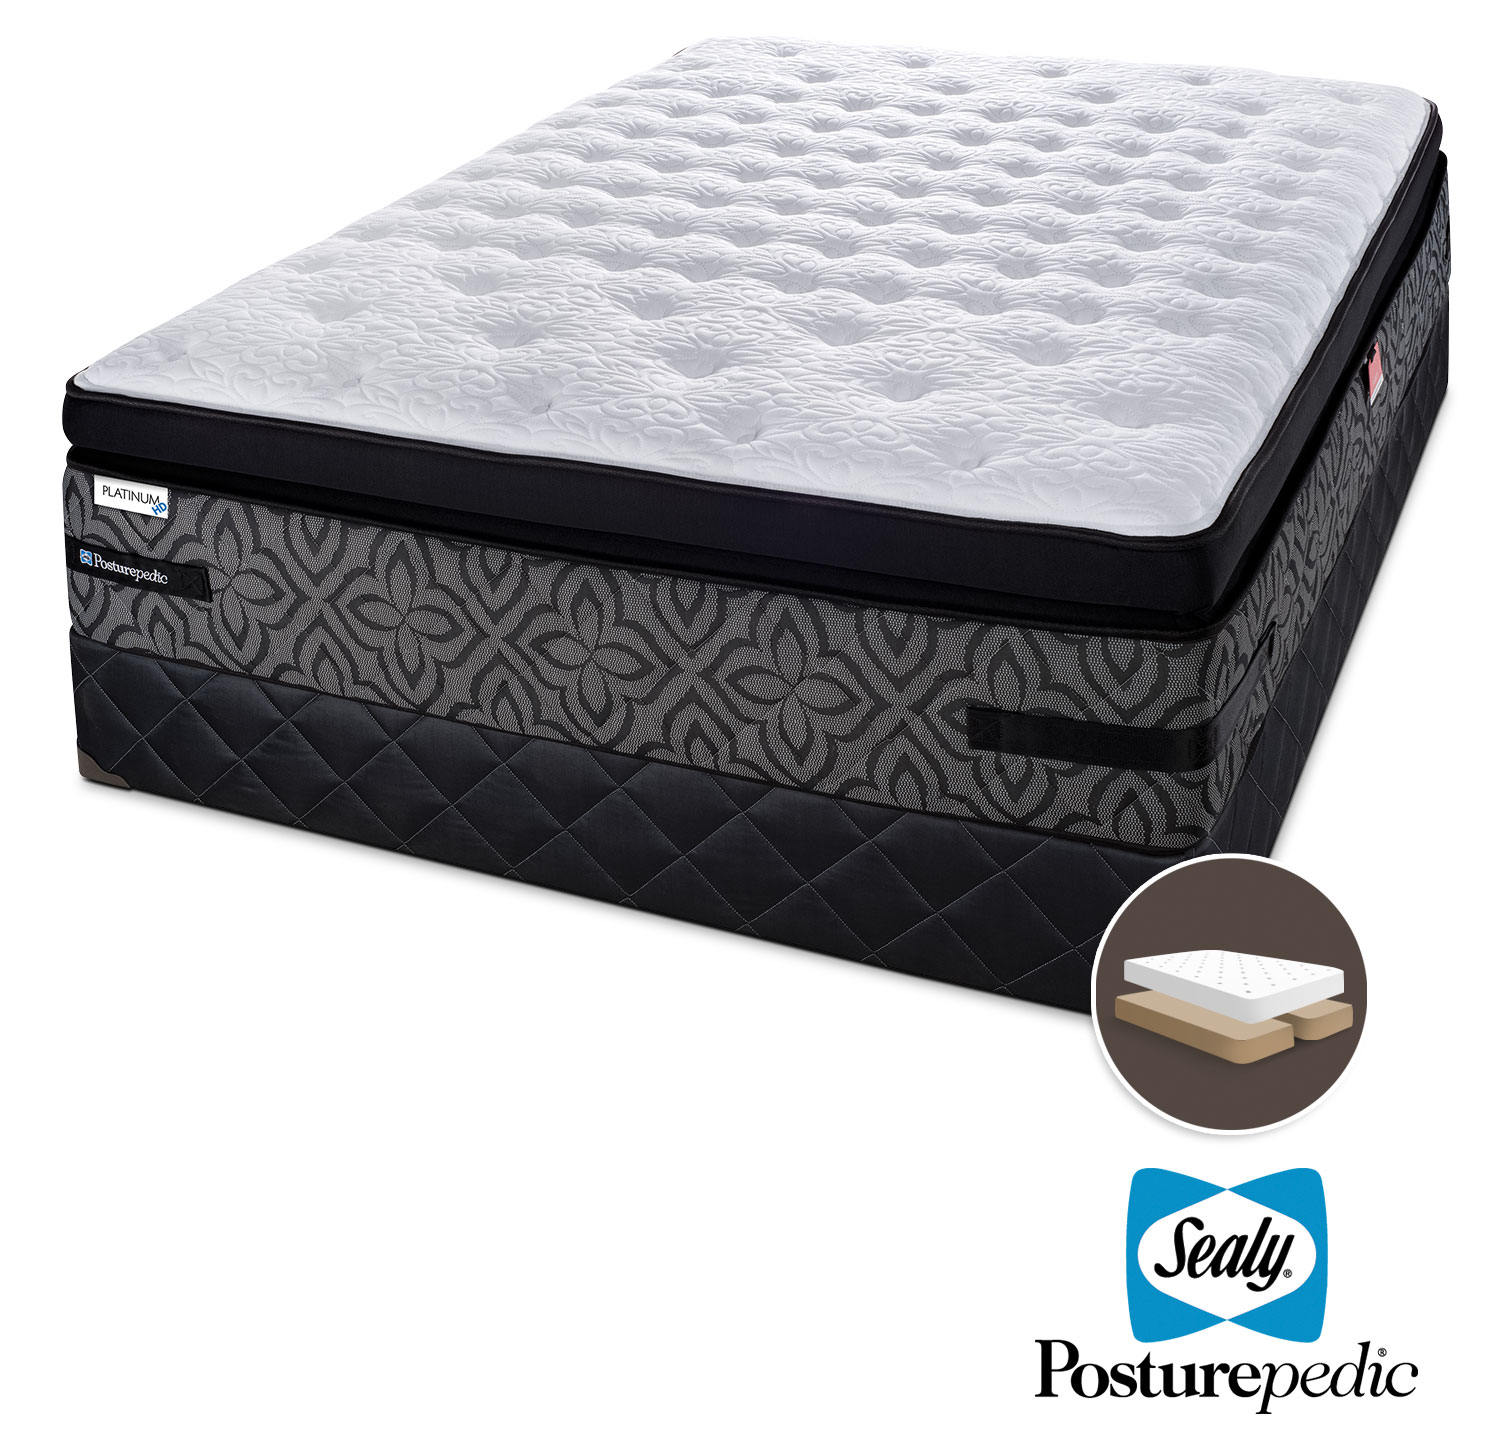 Mattresses and Bedding - Sealy Posturepedic 3 K Cushion Firm King Mattress and Split Boxspring Set